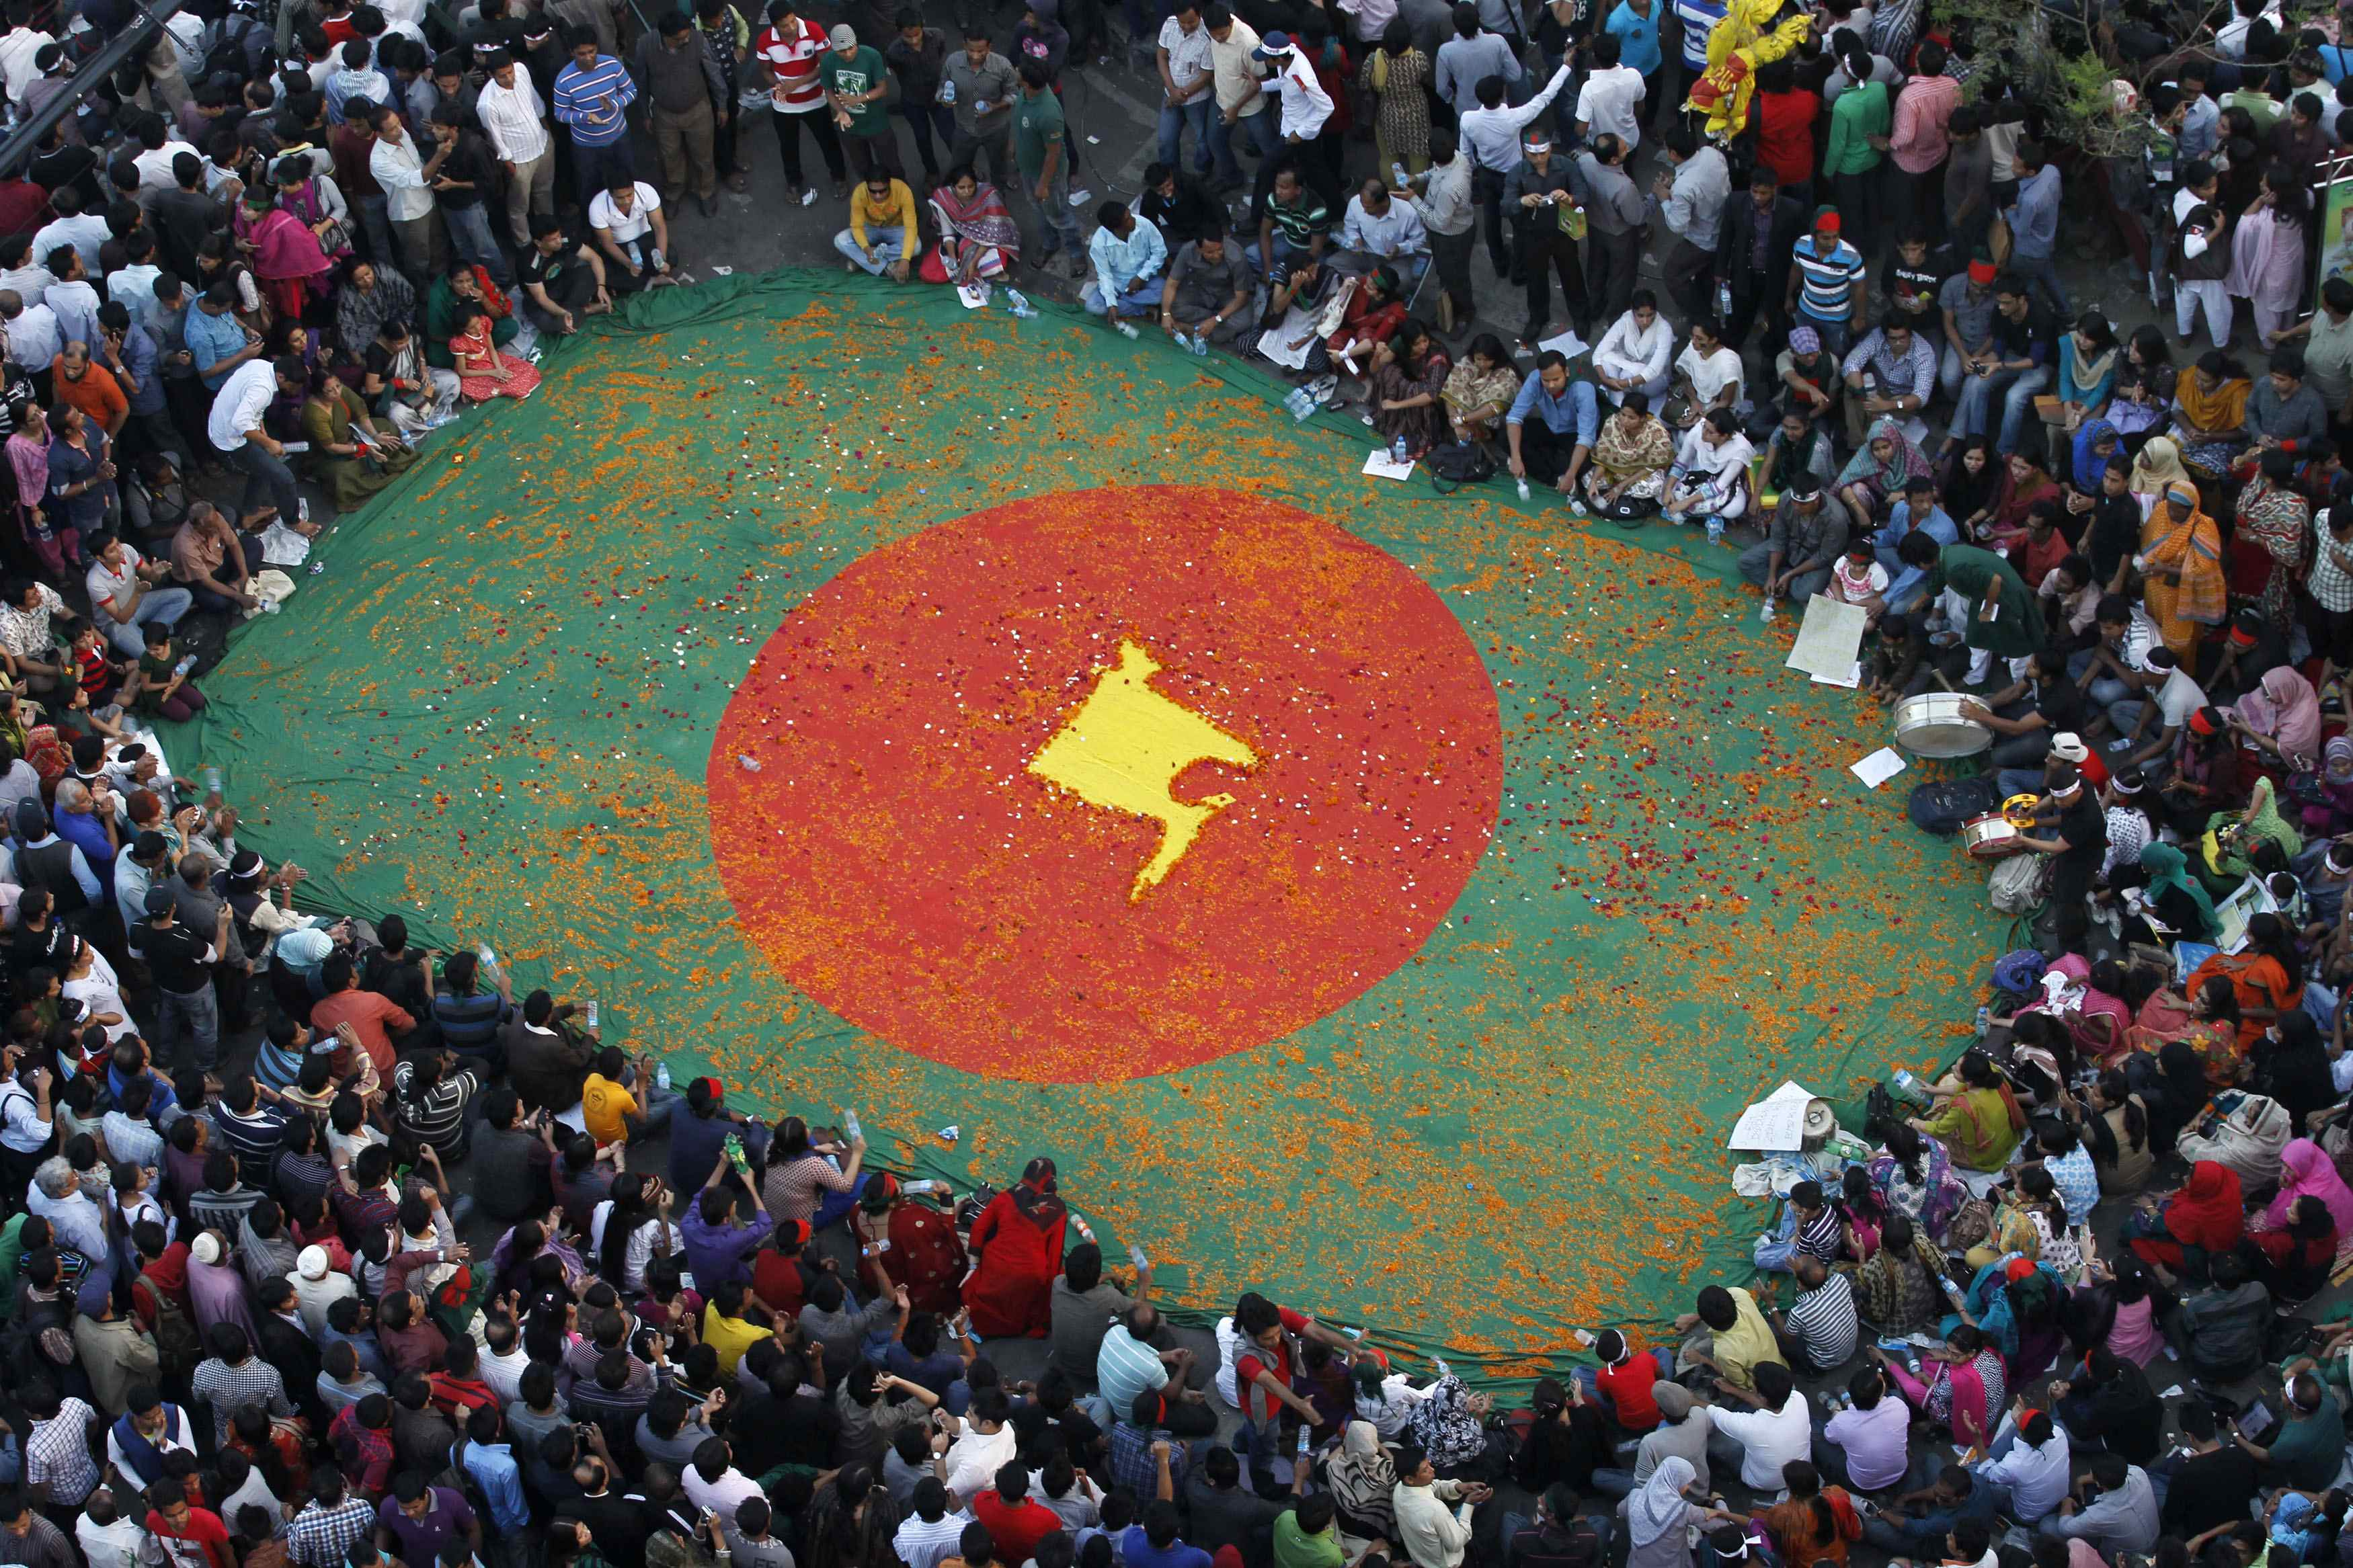 People observe a sit-in protest around a national flag of Bangladesh with a map of the country on it, made by flowers, as they attend a mass demonstration at Shahbagh intersection, demanding capital punishment for Bangladesh's Jamaat-e-Islami senior leader Abdul Quader Mollah, after a war crimes tribunal sentenced him to life imprisonment, in Dhaka February 9, 2013. — Photo Reuters